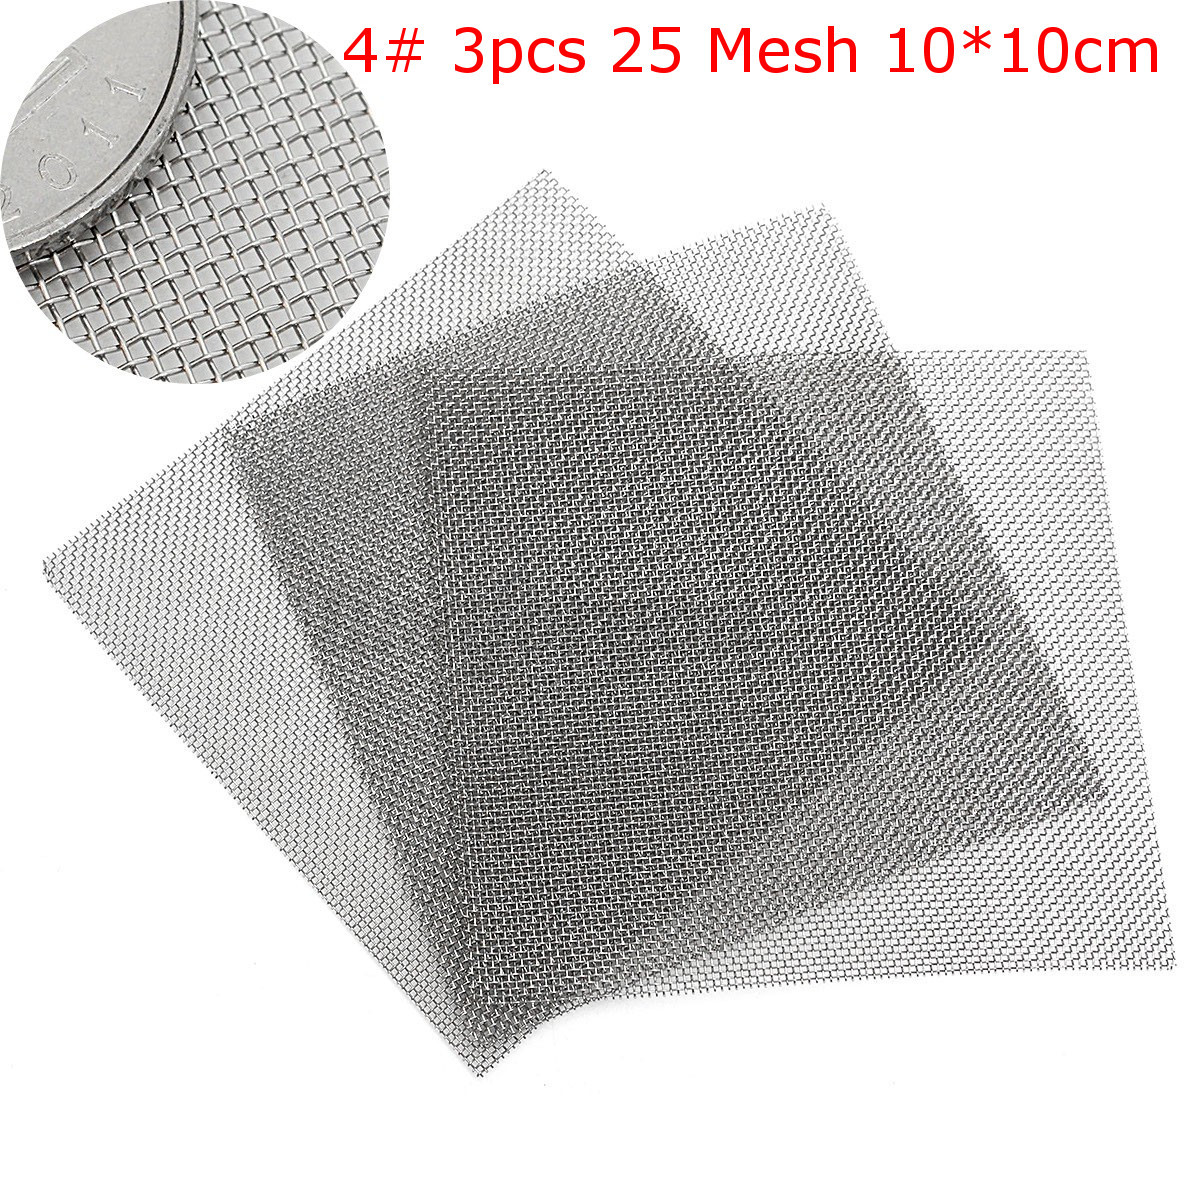 2 to 100 Mesh Woven Wire 304 Stainless Steel Filtration Grill Sheet ...